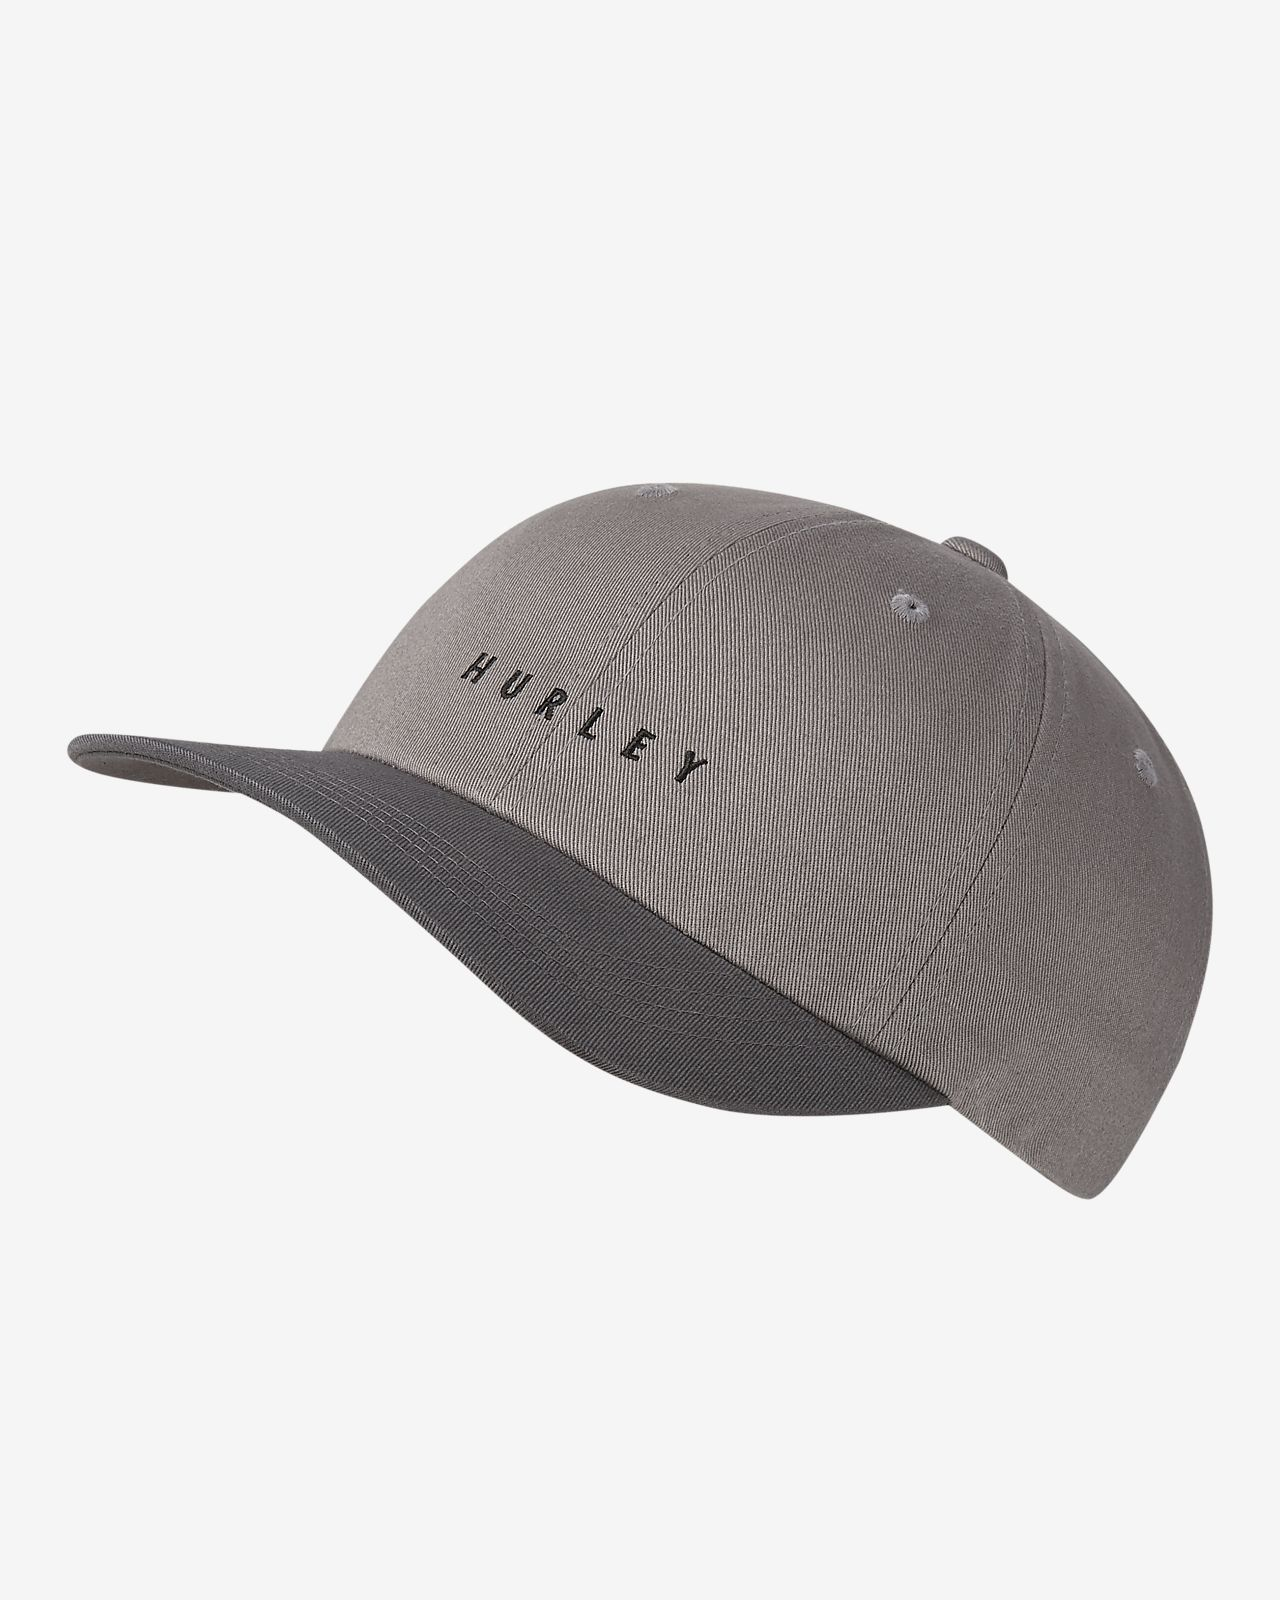 Casquette Hurley Blended pour Homme